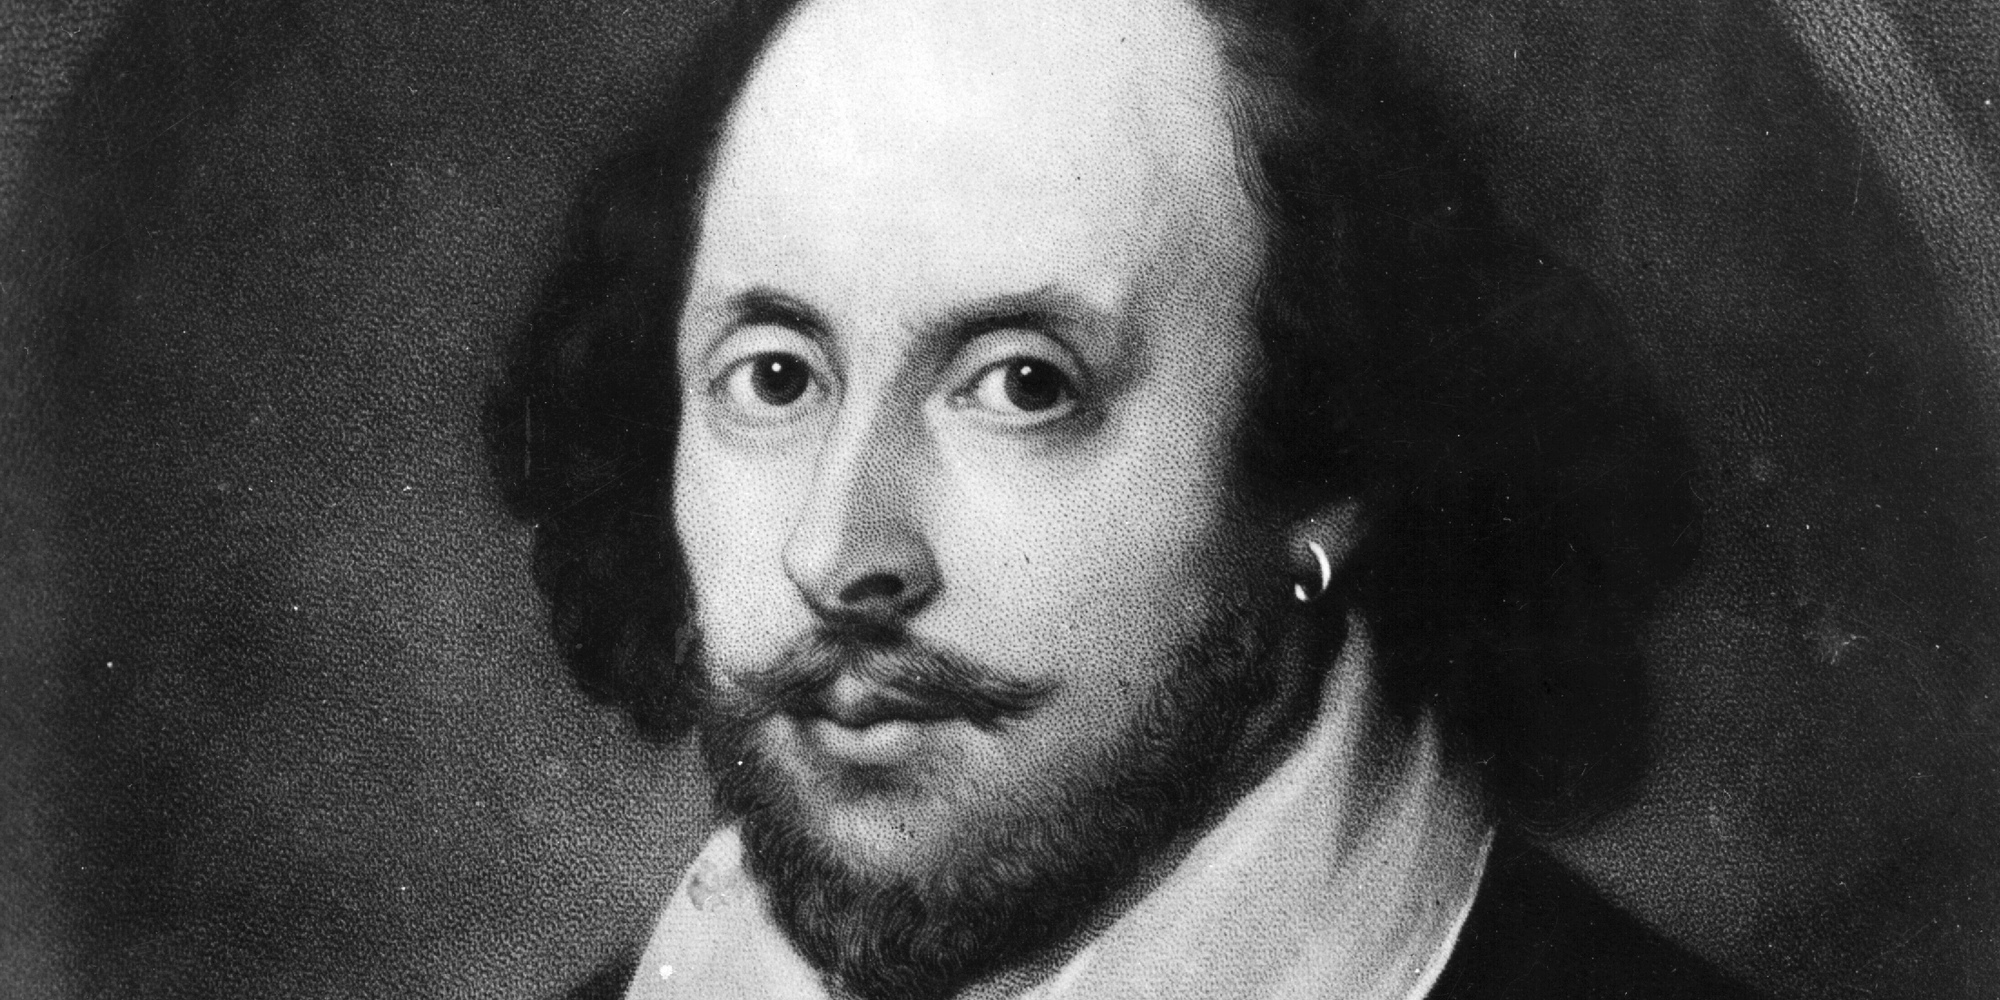 /images/upload/blog/1609/1609_shakespeare-chandos-portrait.jpg